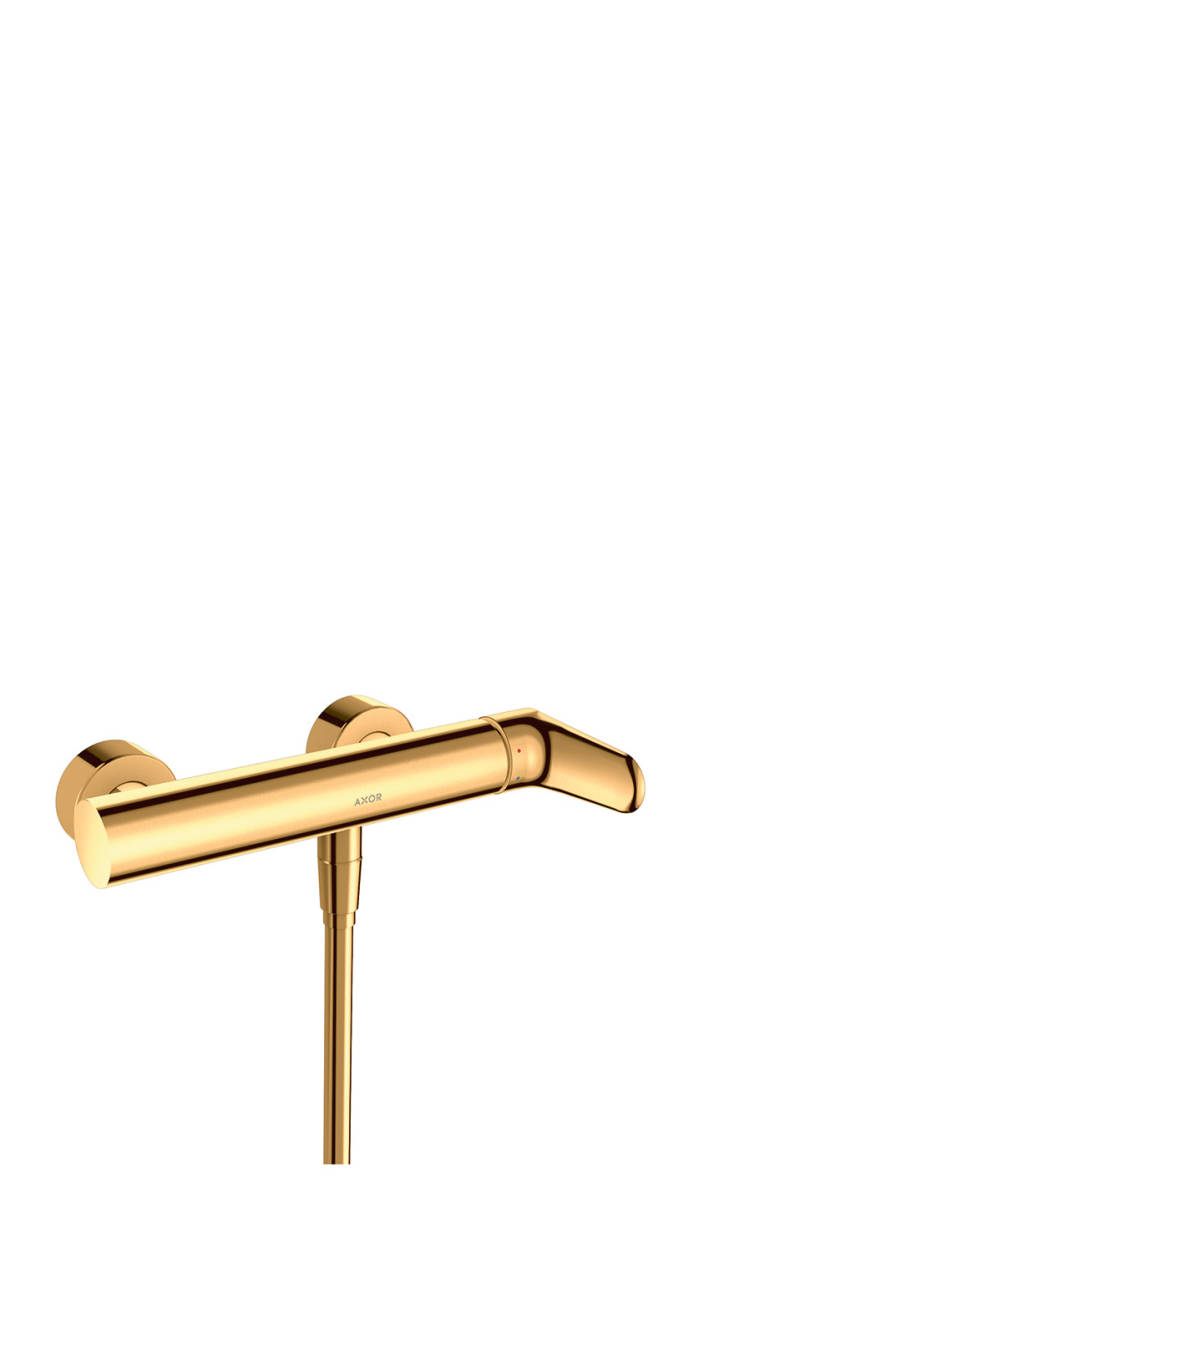 Single lever shower mixer for exposed installation, Polished Gold Optic, 34620990